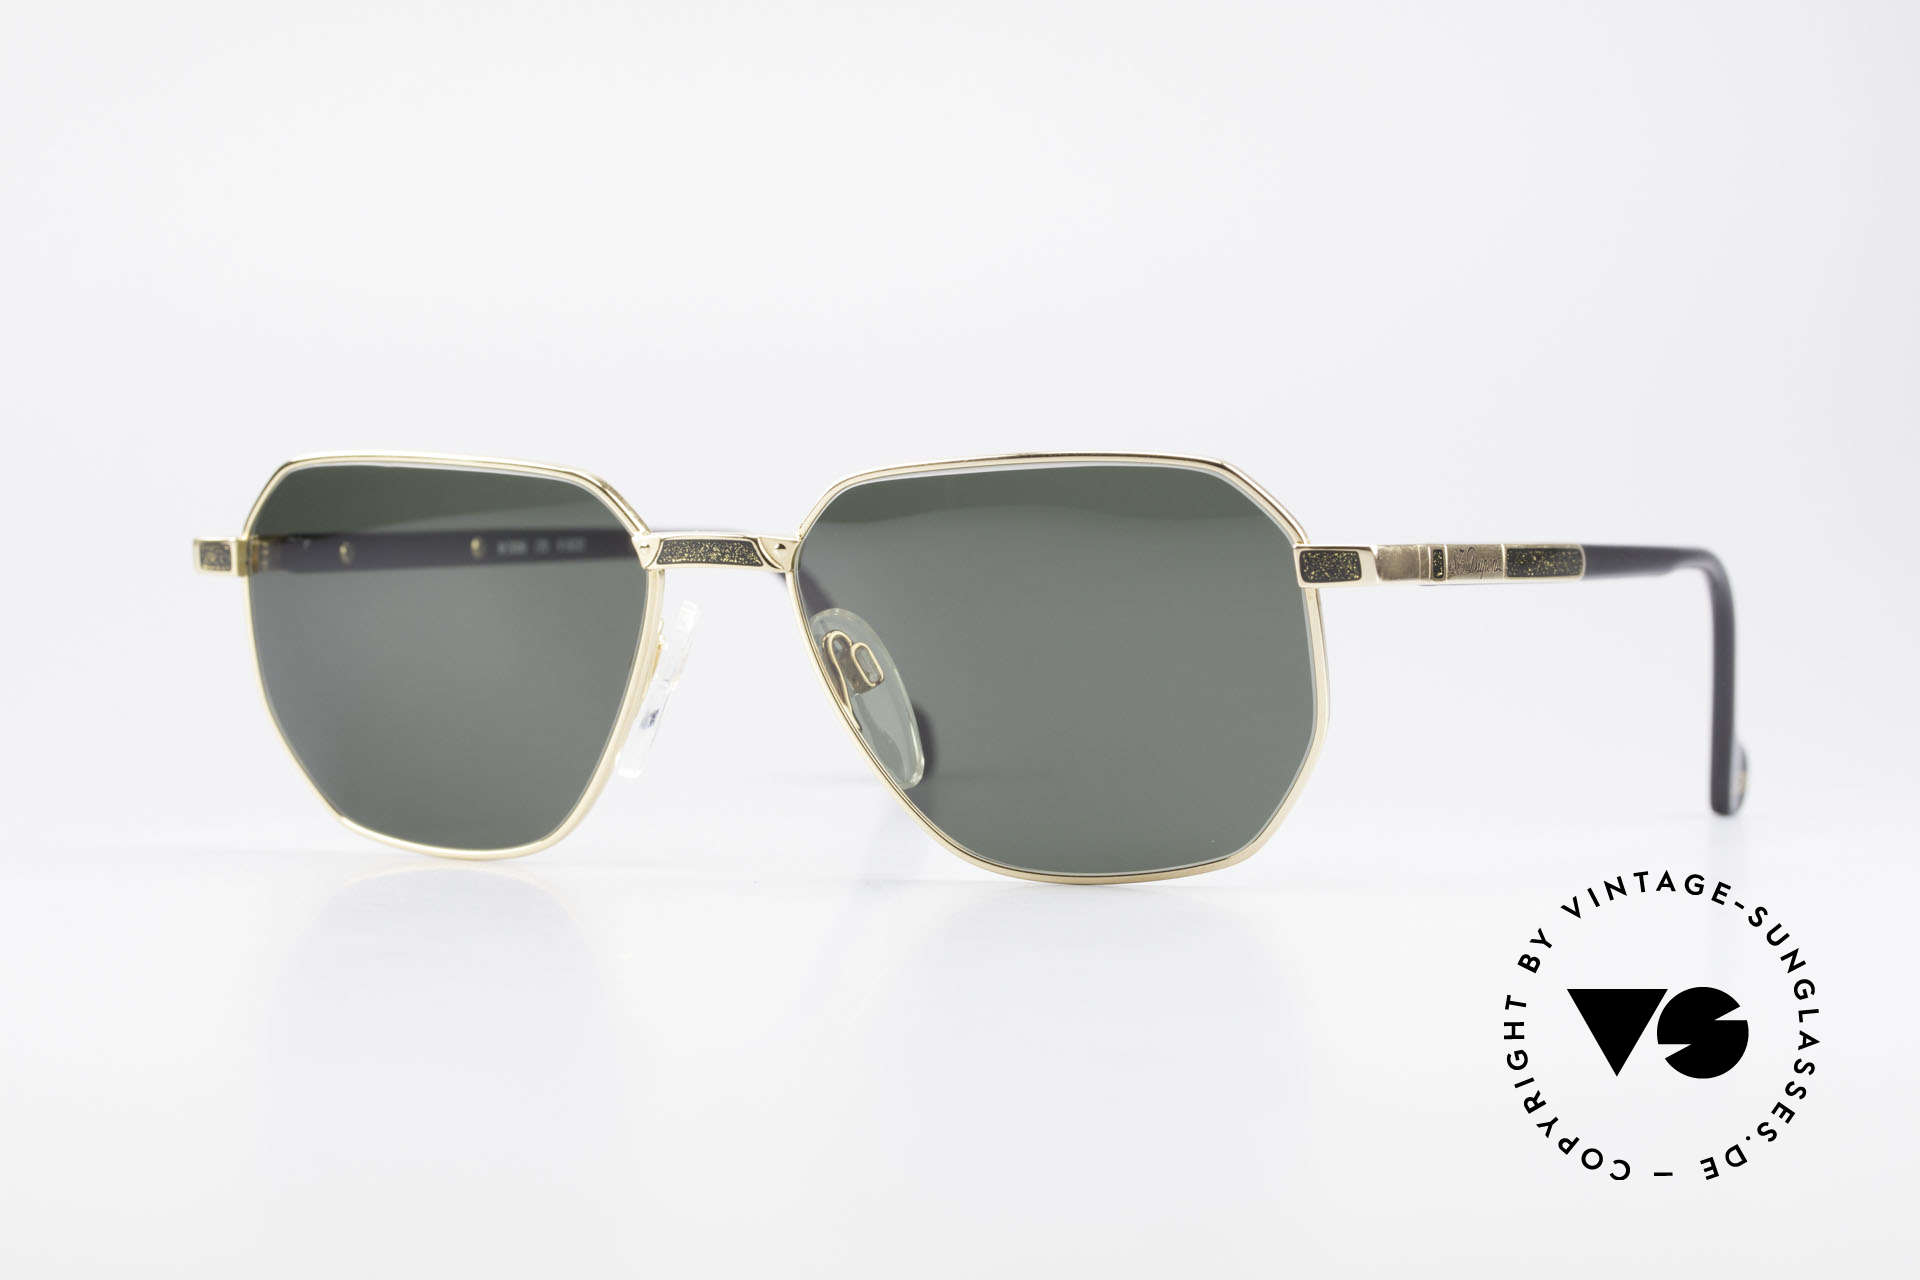 S.T. Dupont D006 Luxury Sunglasses Vintage, very exclusive S.T. DUPONT luxury shades, size 55°16, Made for Men